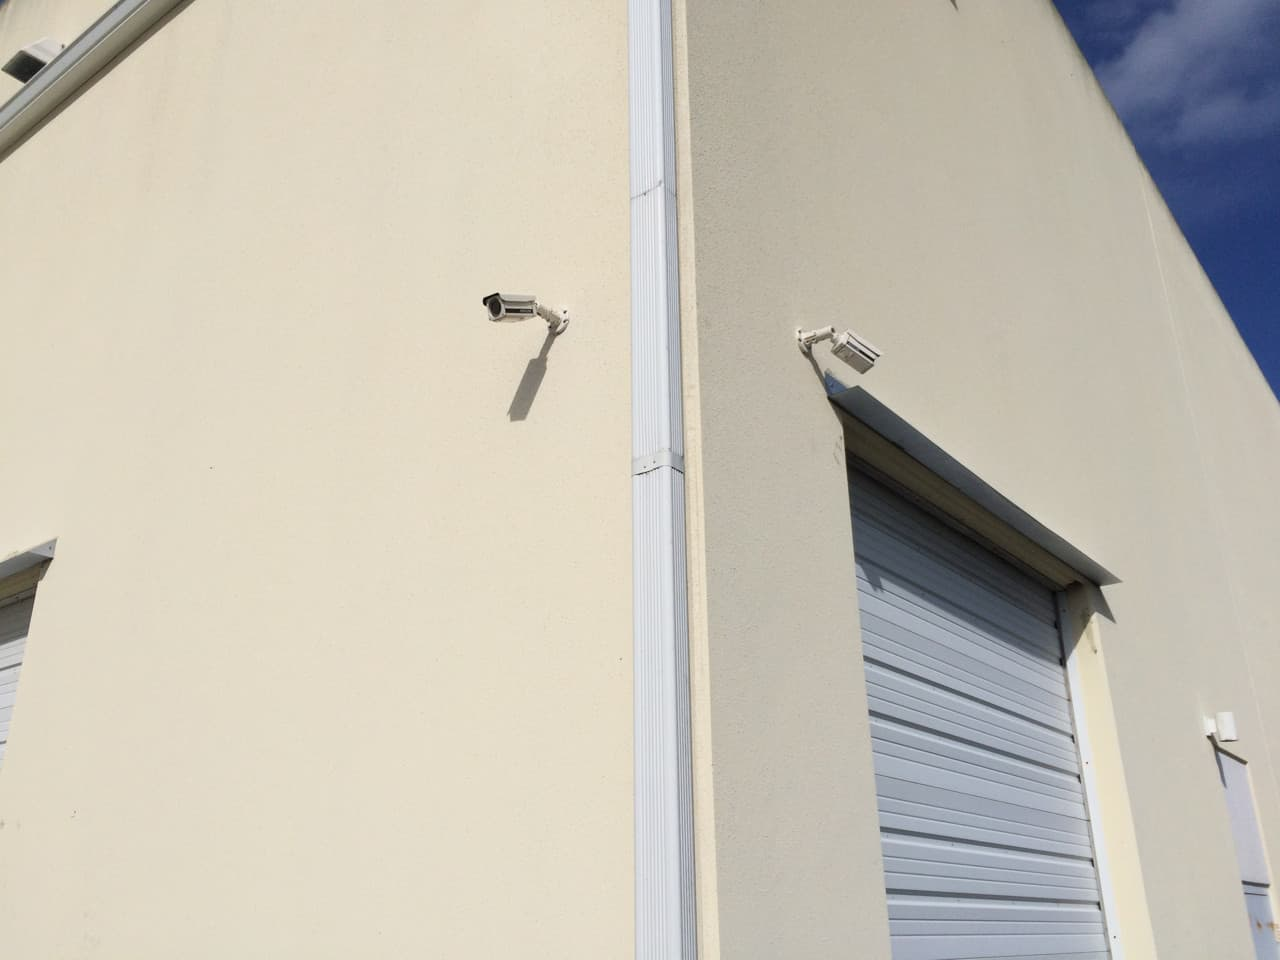 Outdoor Security Camera Mounted on Warehouse